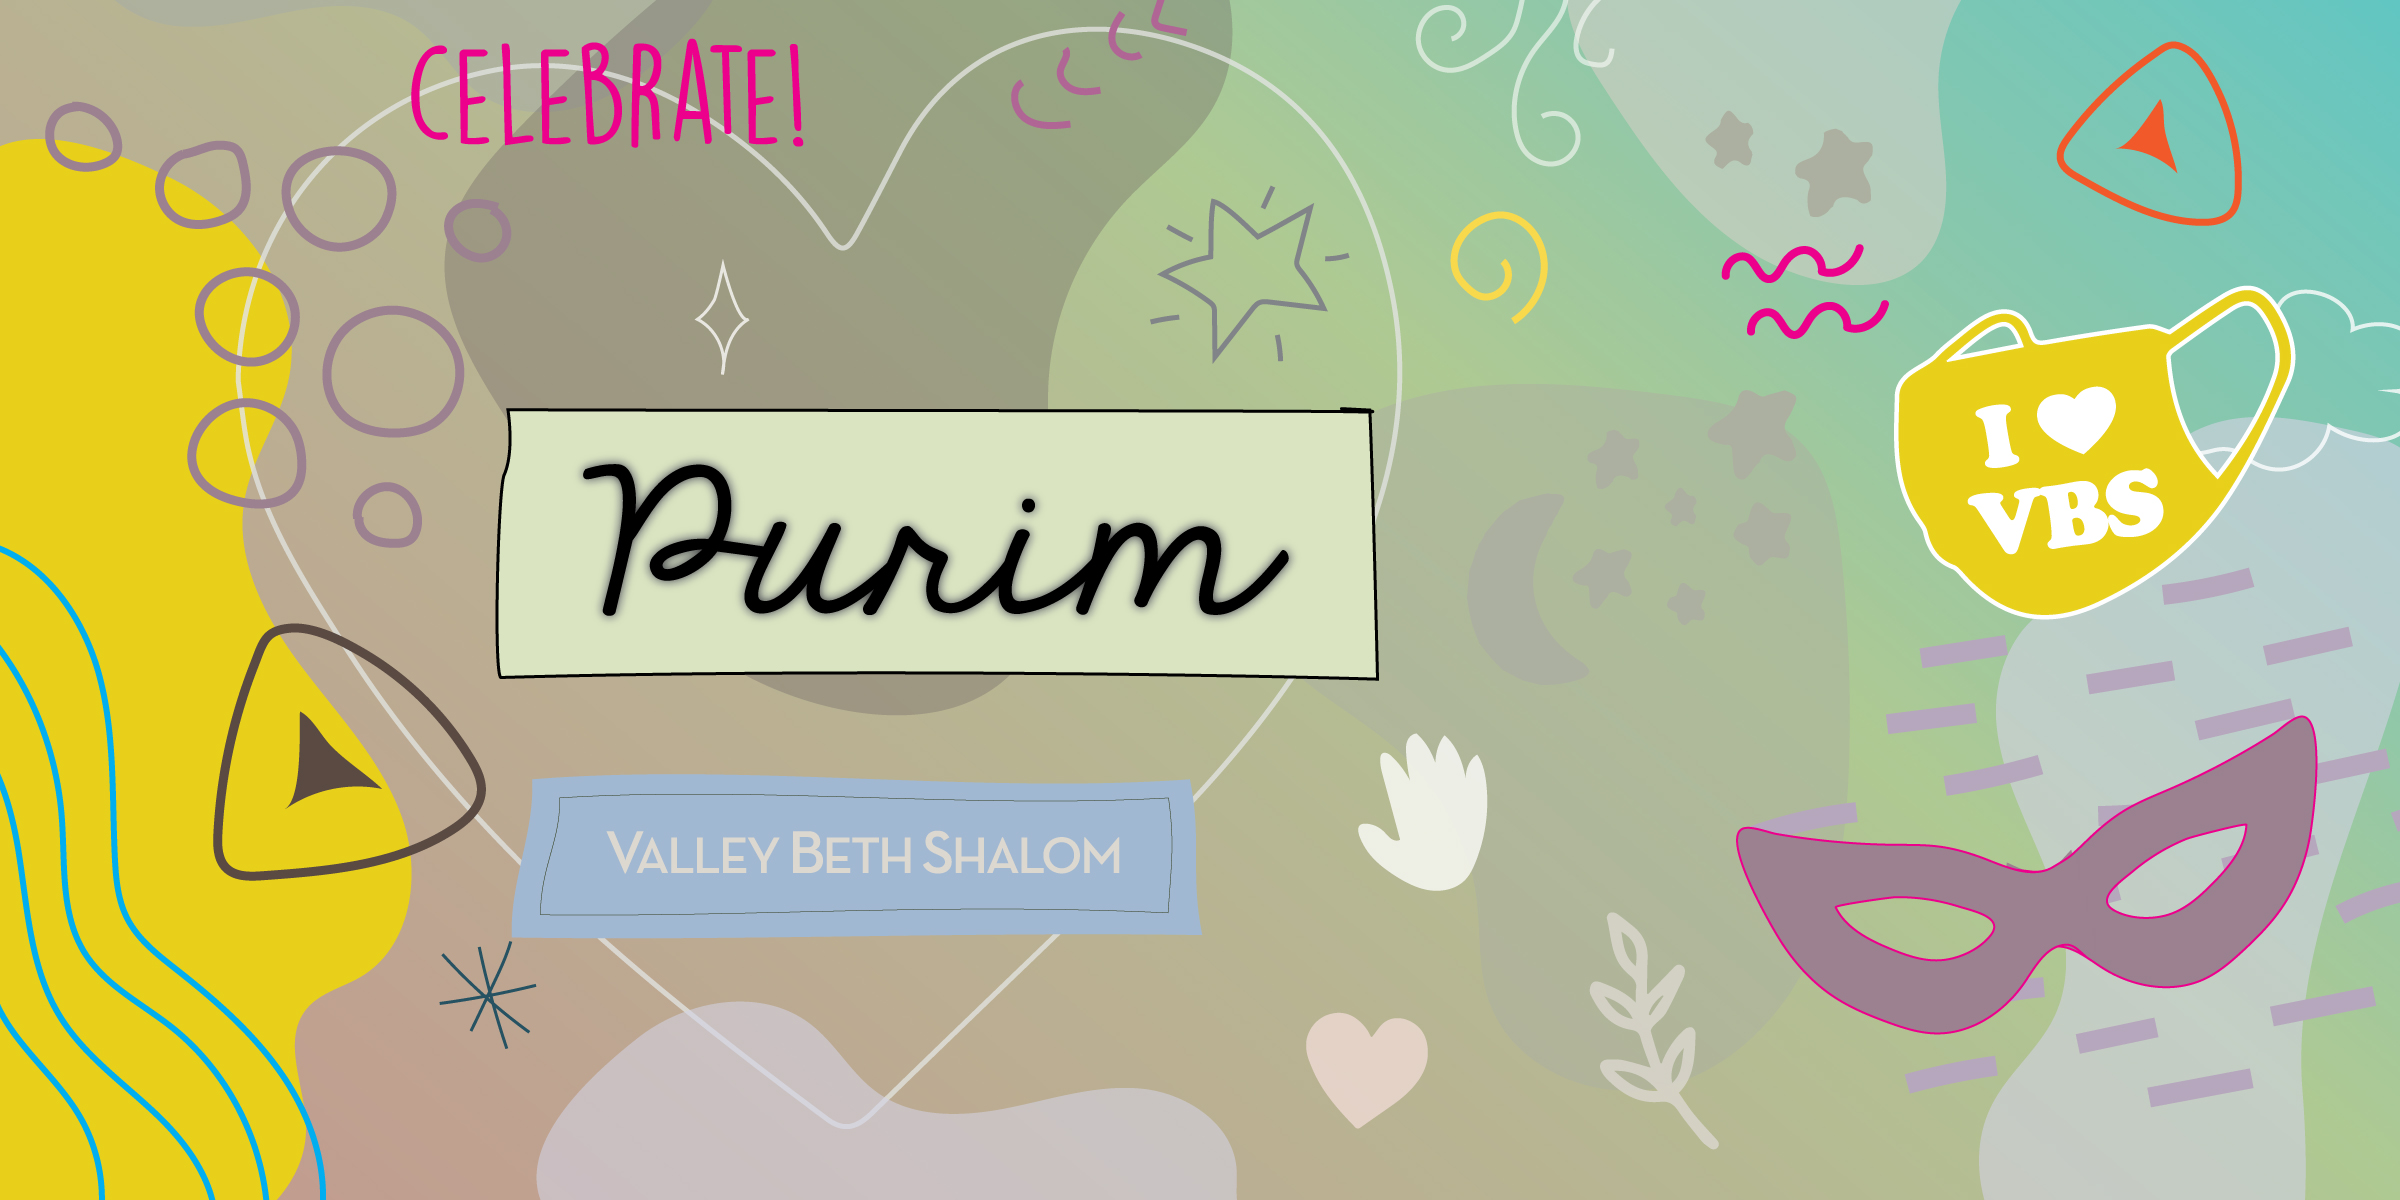 """<a href=""""/purim""""                                     target="""""""">                                                                 <span class=""""slider_title"""">                                     CELEBRATE PURIM                                </span>                                                                 </a>                                                                                                                                                                                       <span class=""""slider_description"""">PARTICIPATE IN OUR PURIM FESTIVITIES</span>                                                                                     <a href=""""/purim"""" class=""""slider_link""""                             target="""""""">                             Celebrate With Us                            </a>"""